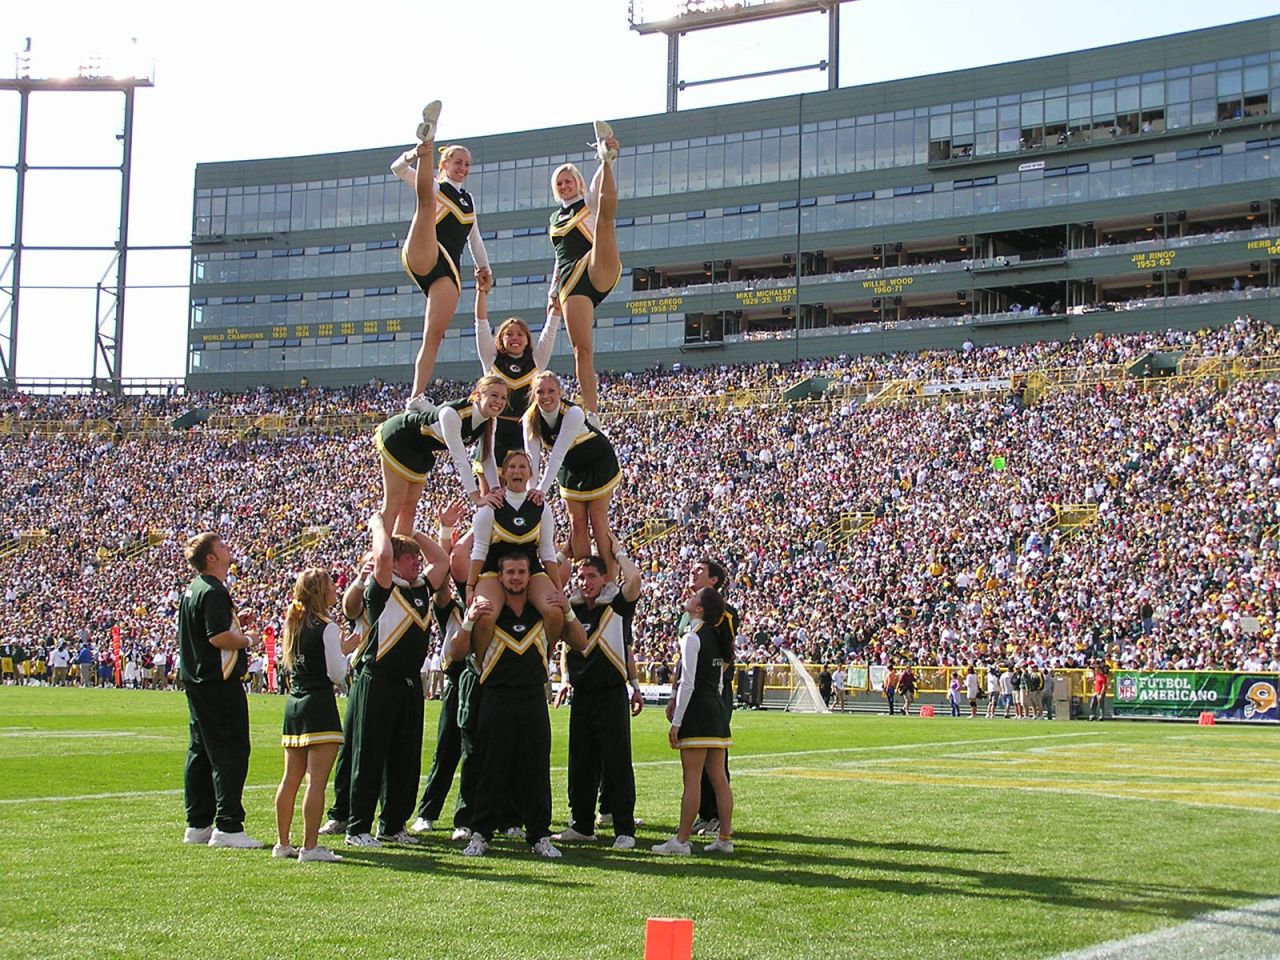 http://4.bp.blogspot.com/_EEAl5VOFhjM/TUtg65NZRKI/AAAAAAAAAGI/0O7mhyzgY5g/s1600/green_bay_packers_cheerleaders_wallpaper_-_1280x960.jpg